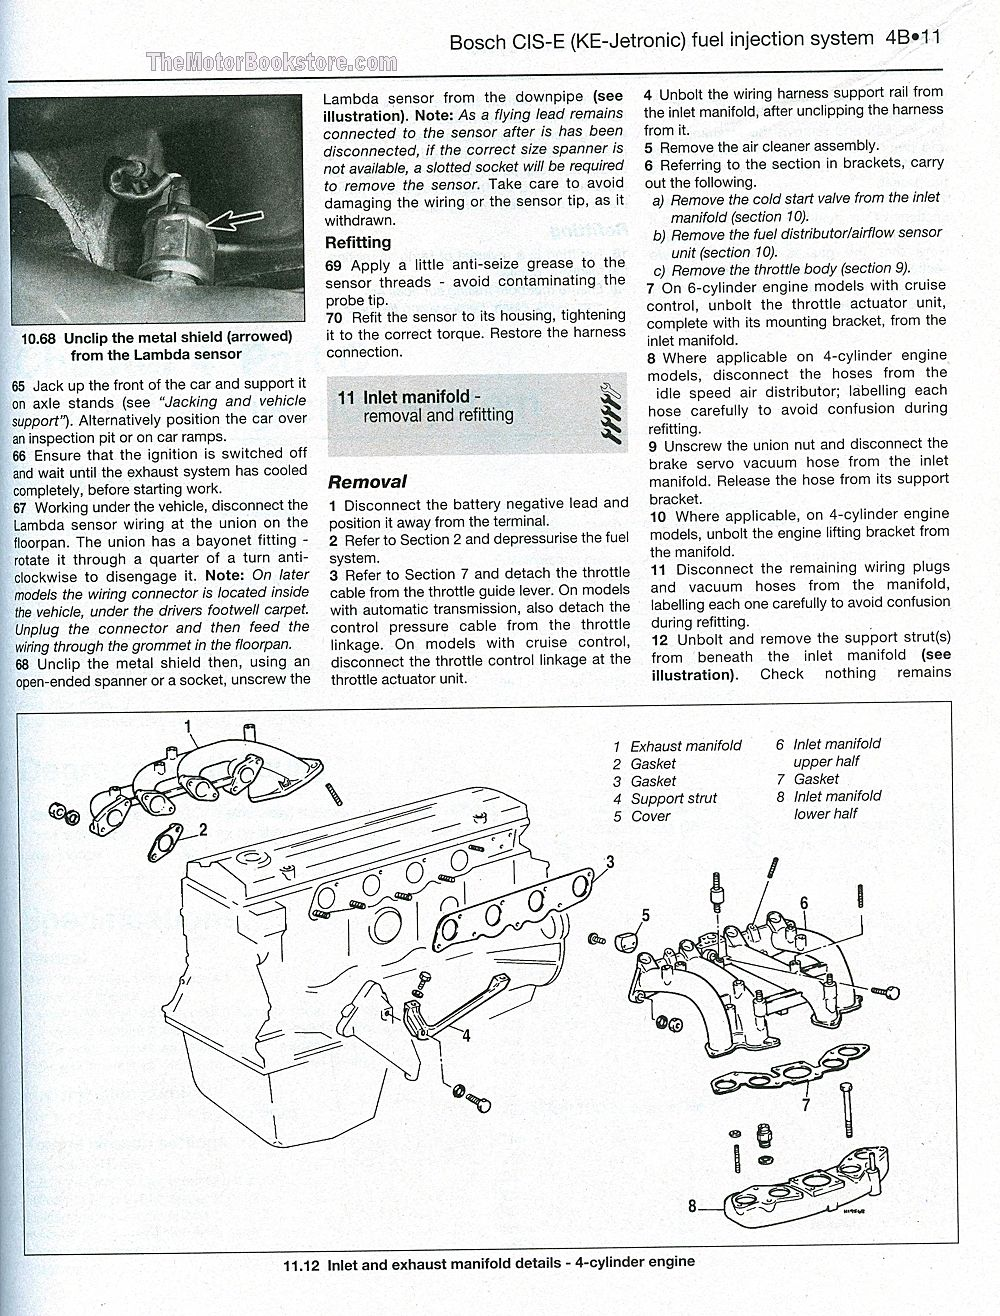 LG_2566] 1992 Mercedes Benz Engine Diagram Wires Free DiagramApom Simij Knie Rdona Benol Eatte Mohammedshrine Librar Wiring 101